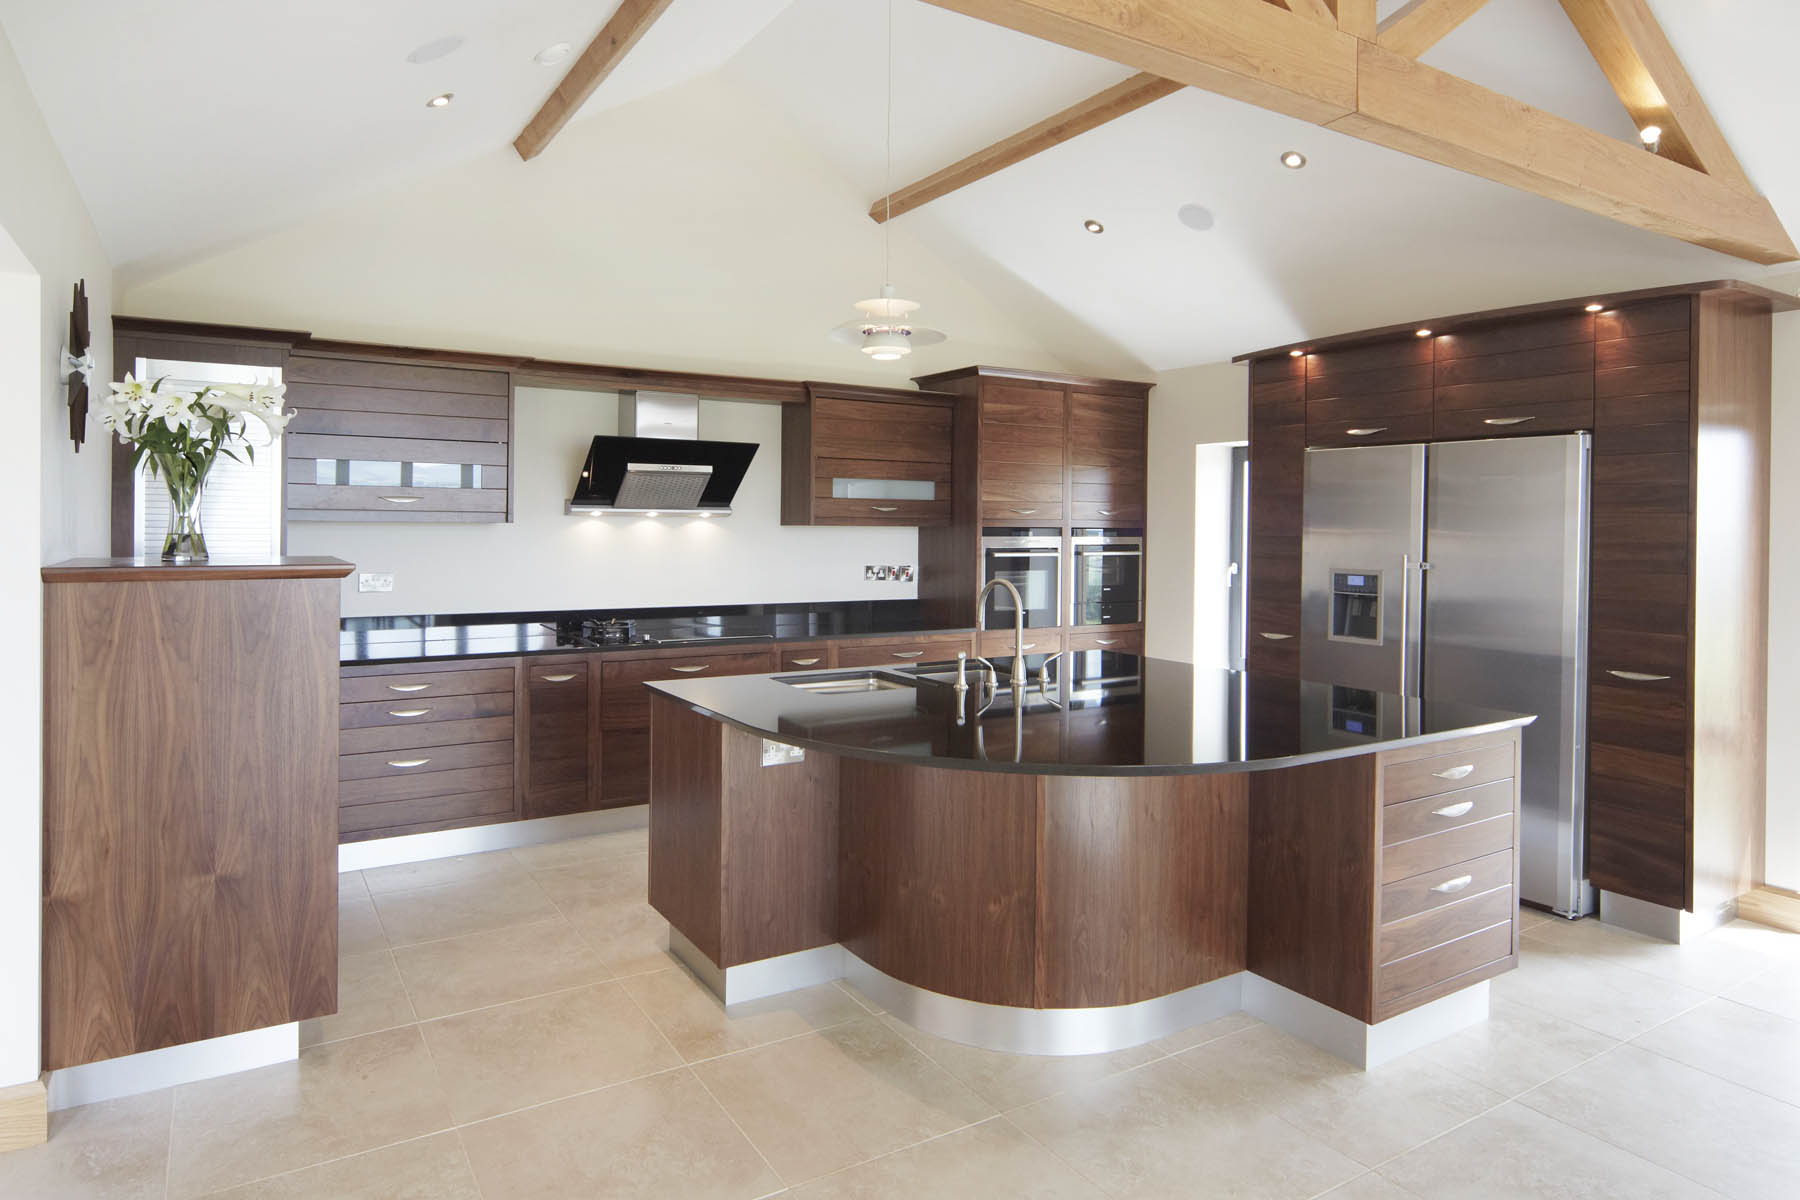 Kitchens california remodeling inc - Kitchen remodel designs ...